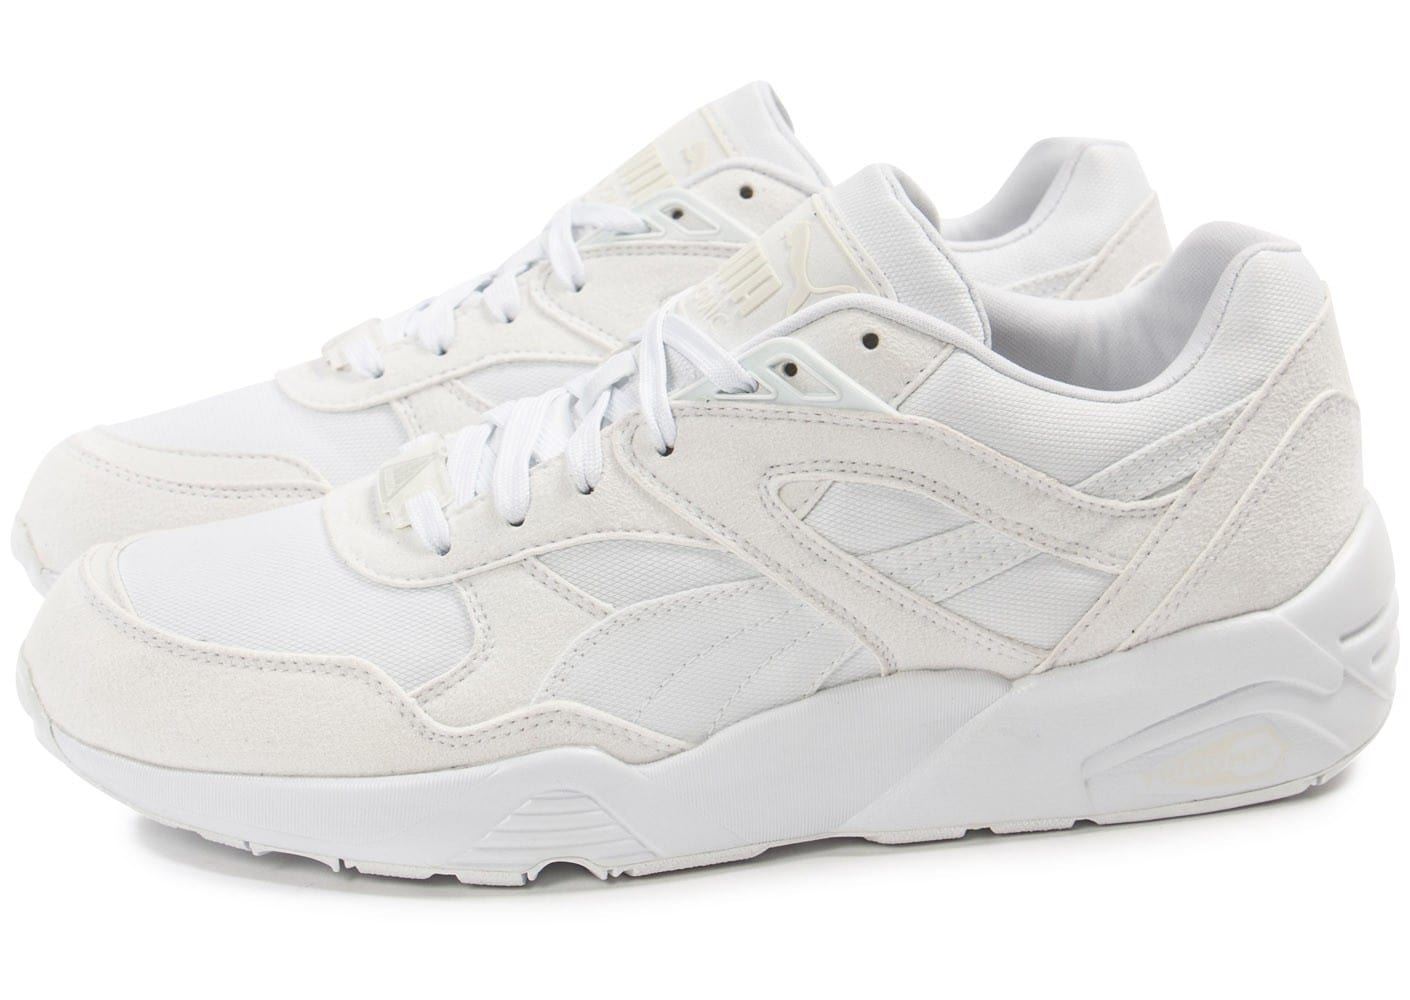 puma r698 trinomic blanche chaussures homme chausport. Black Bedroom Furniture Sets. Home Design Ideas